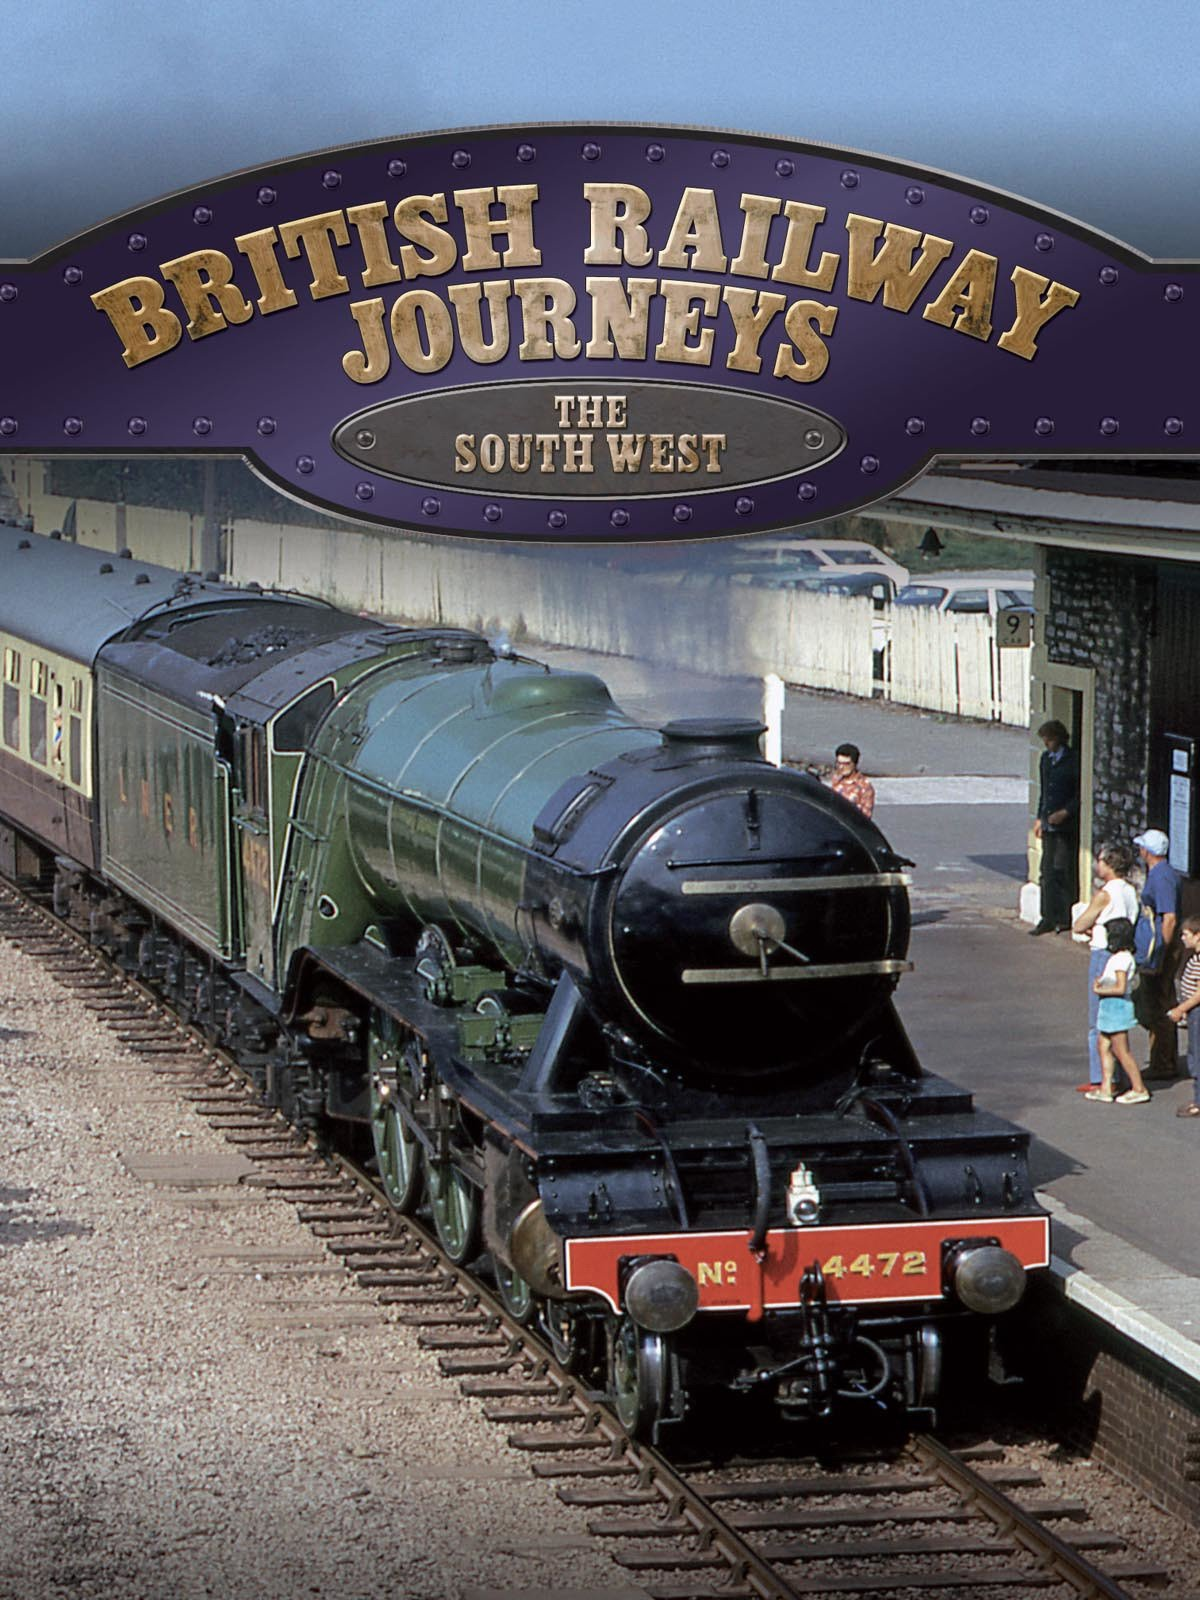 British Railway Journeys: The South West